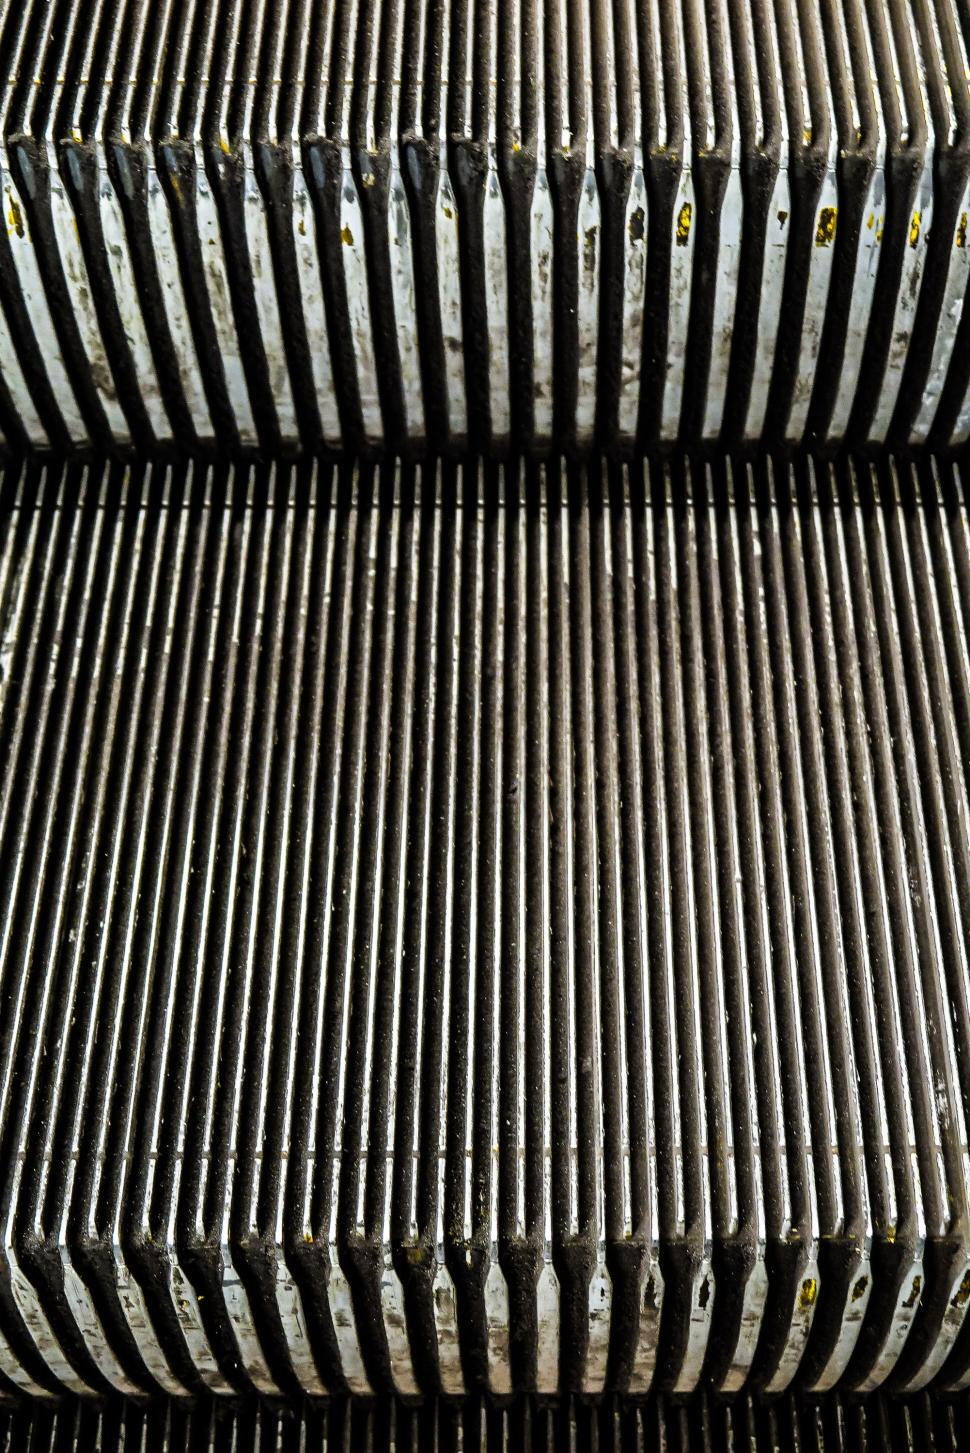 Download Free Stock HD Photo of Escalator steps detail Online